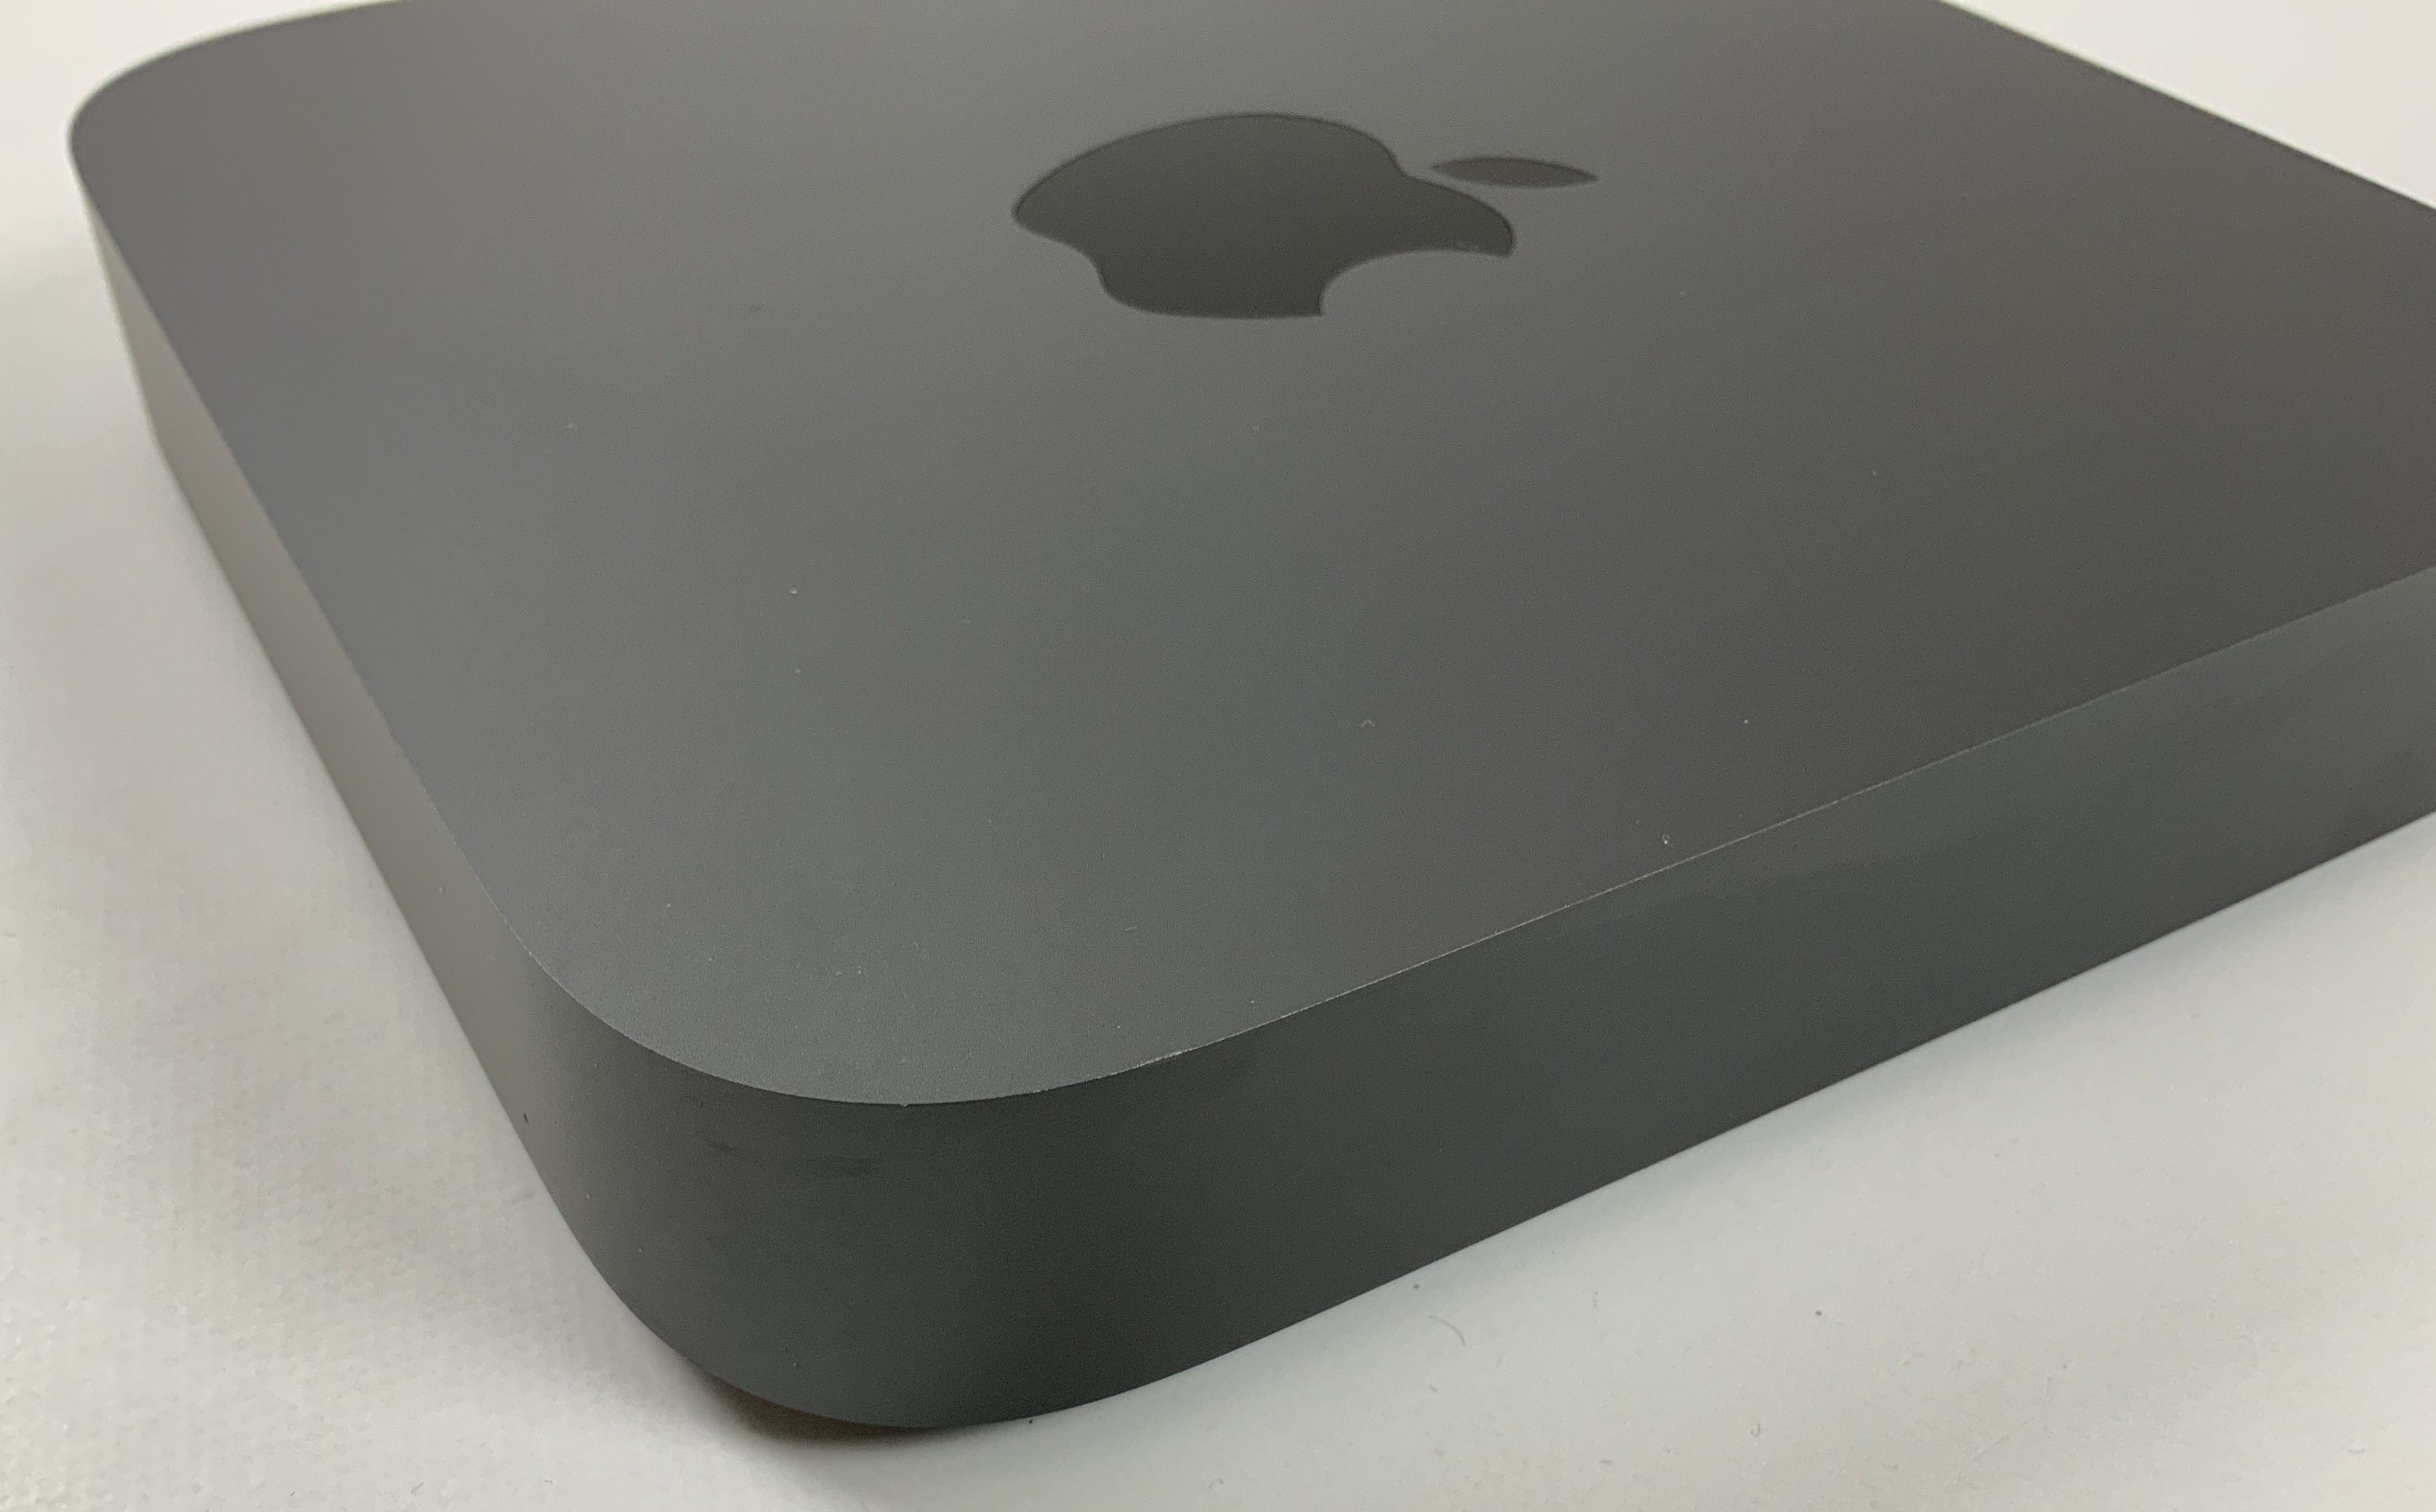 Mac Mini Late 2018 (Intel 6-Core i5 3.0 GHz 8 GB RAM 256 GB SSD), Intel 6-Core i5 3.0 GHz, 8 GB RAM, 256 GB SSD, bild 5